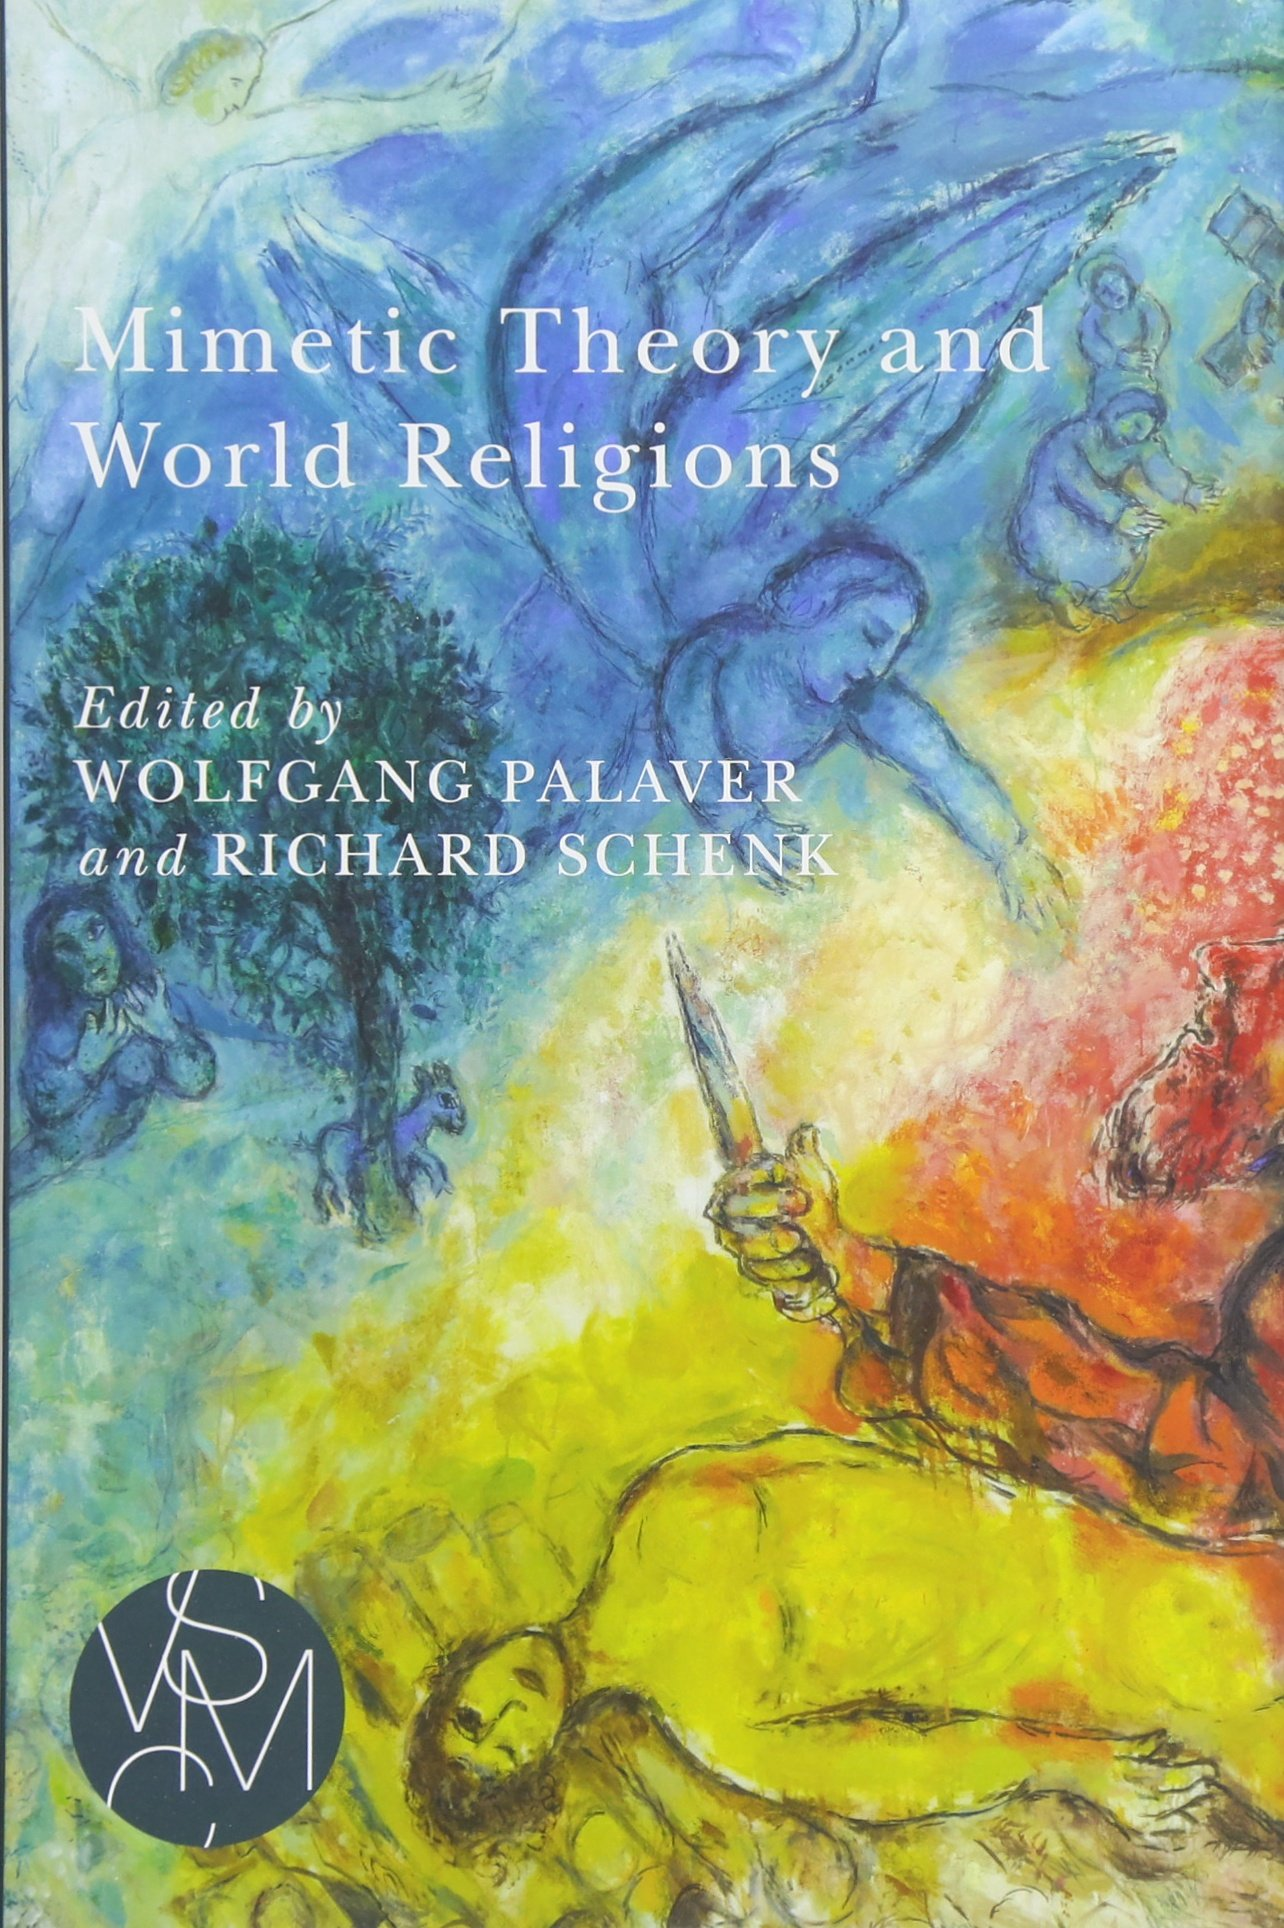 Mimetic Theory and World Religions (Studies in Violence, Mimesis, and Culture)